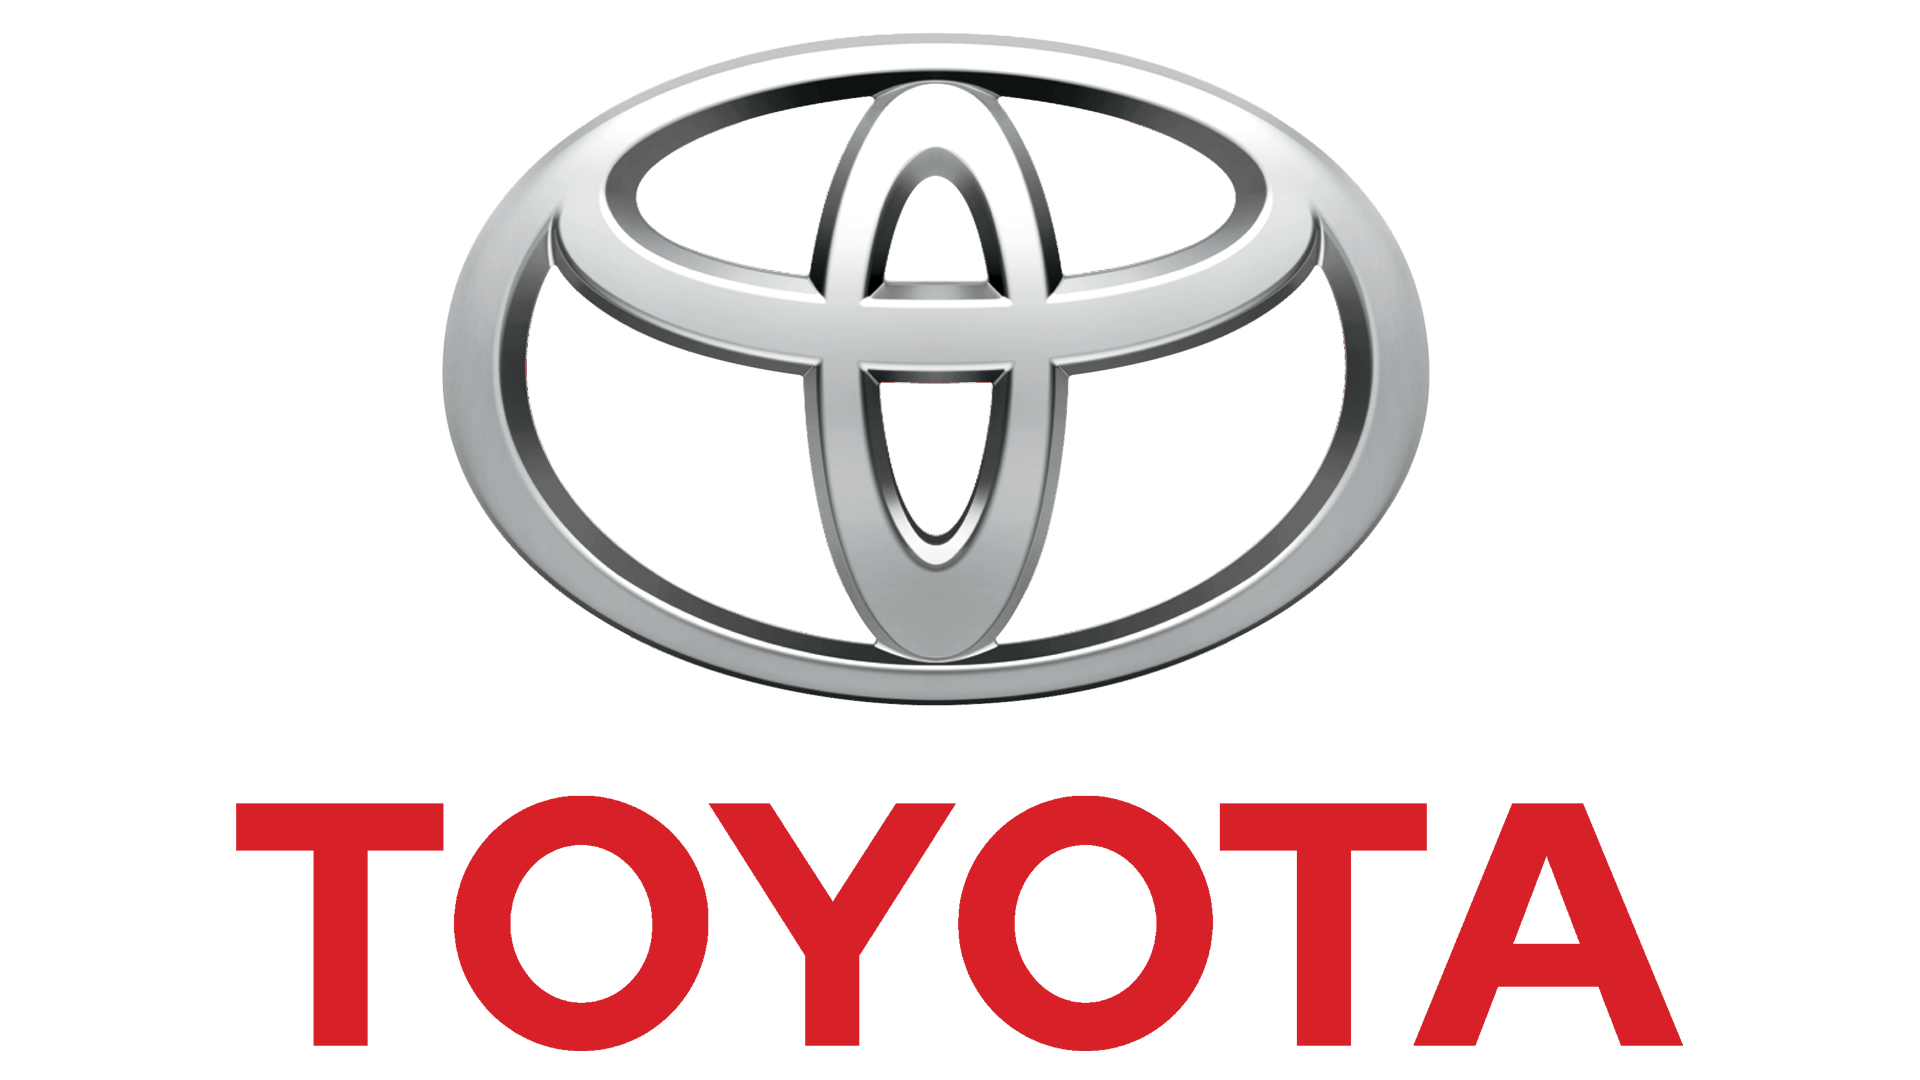 Toyota Logo Toyota Symbol Meaning History And Evolution